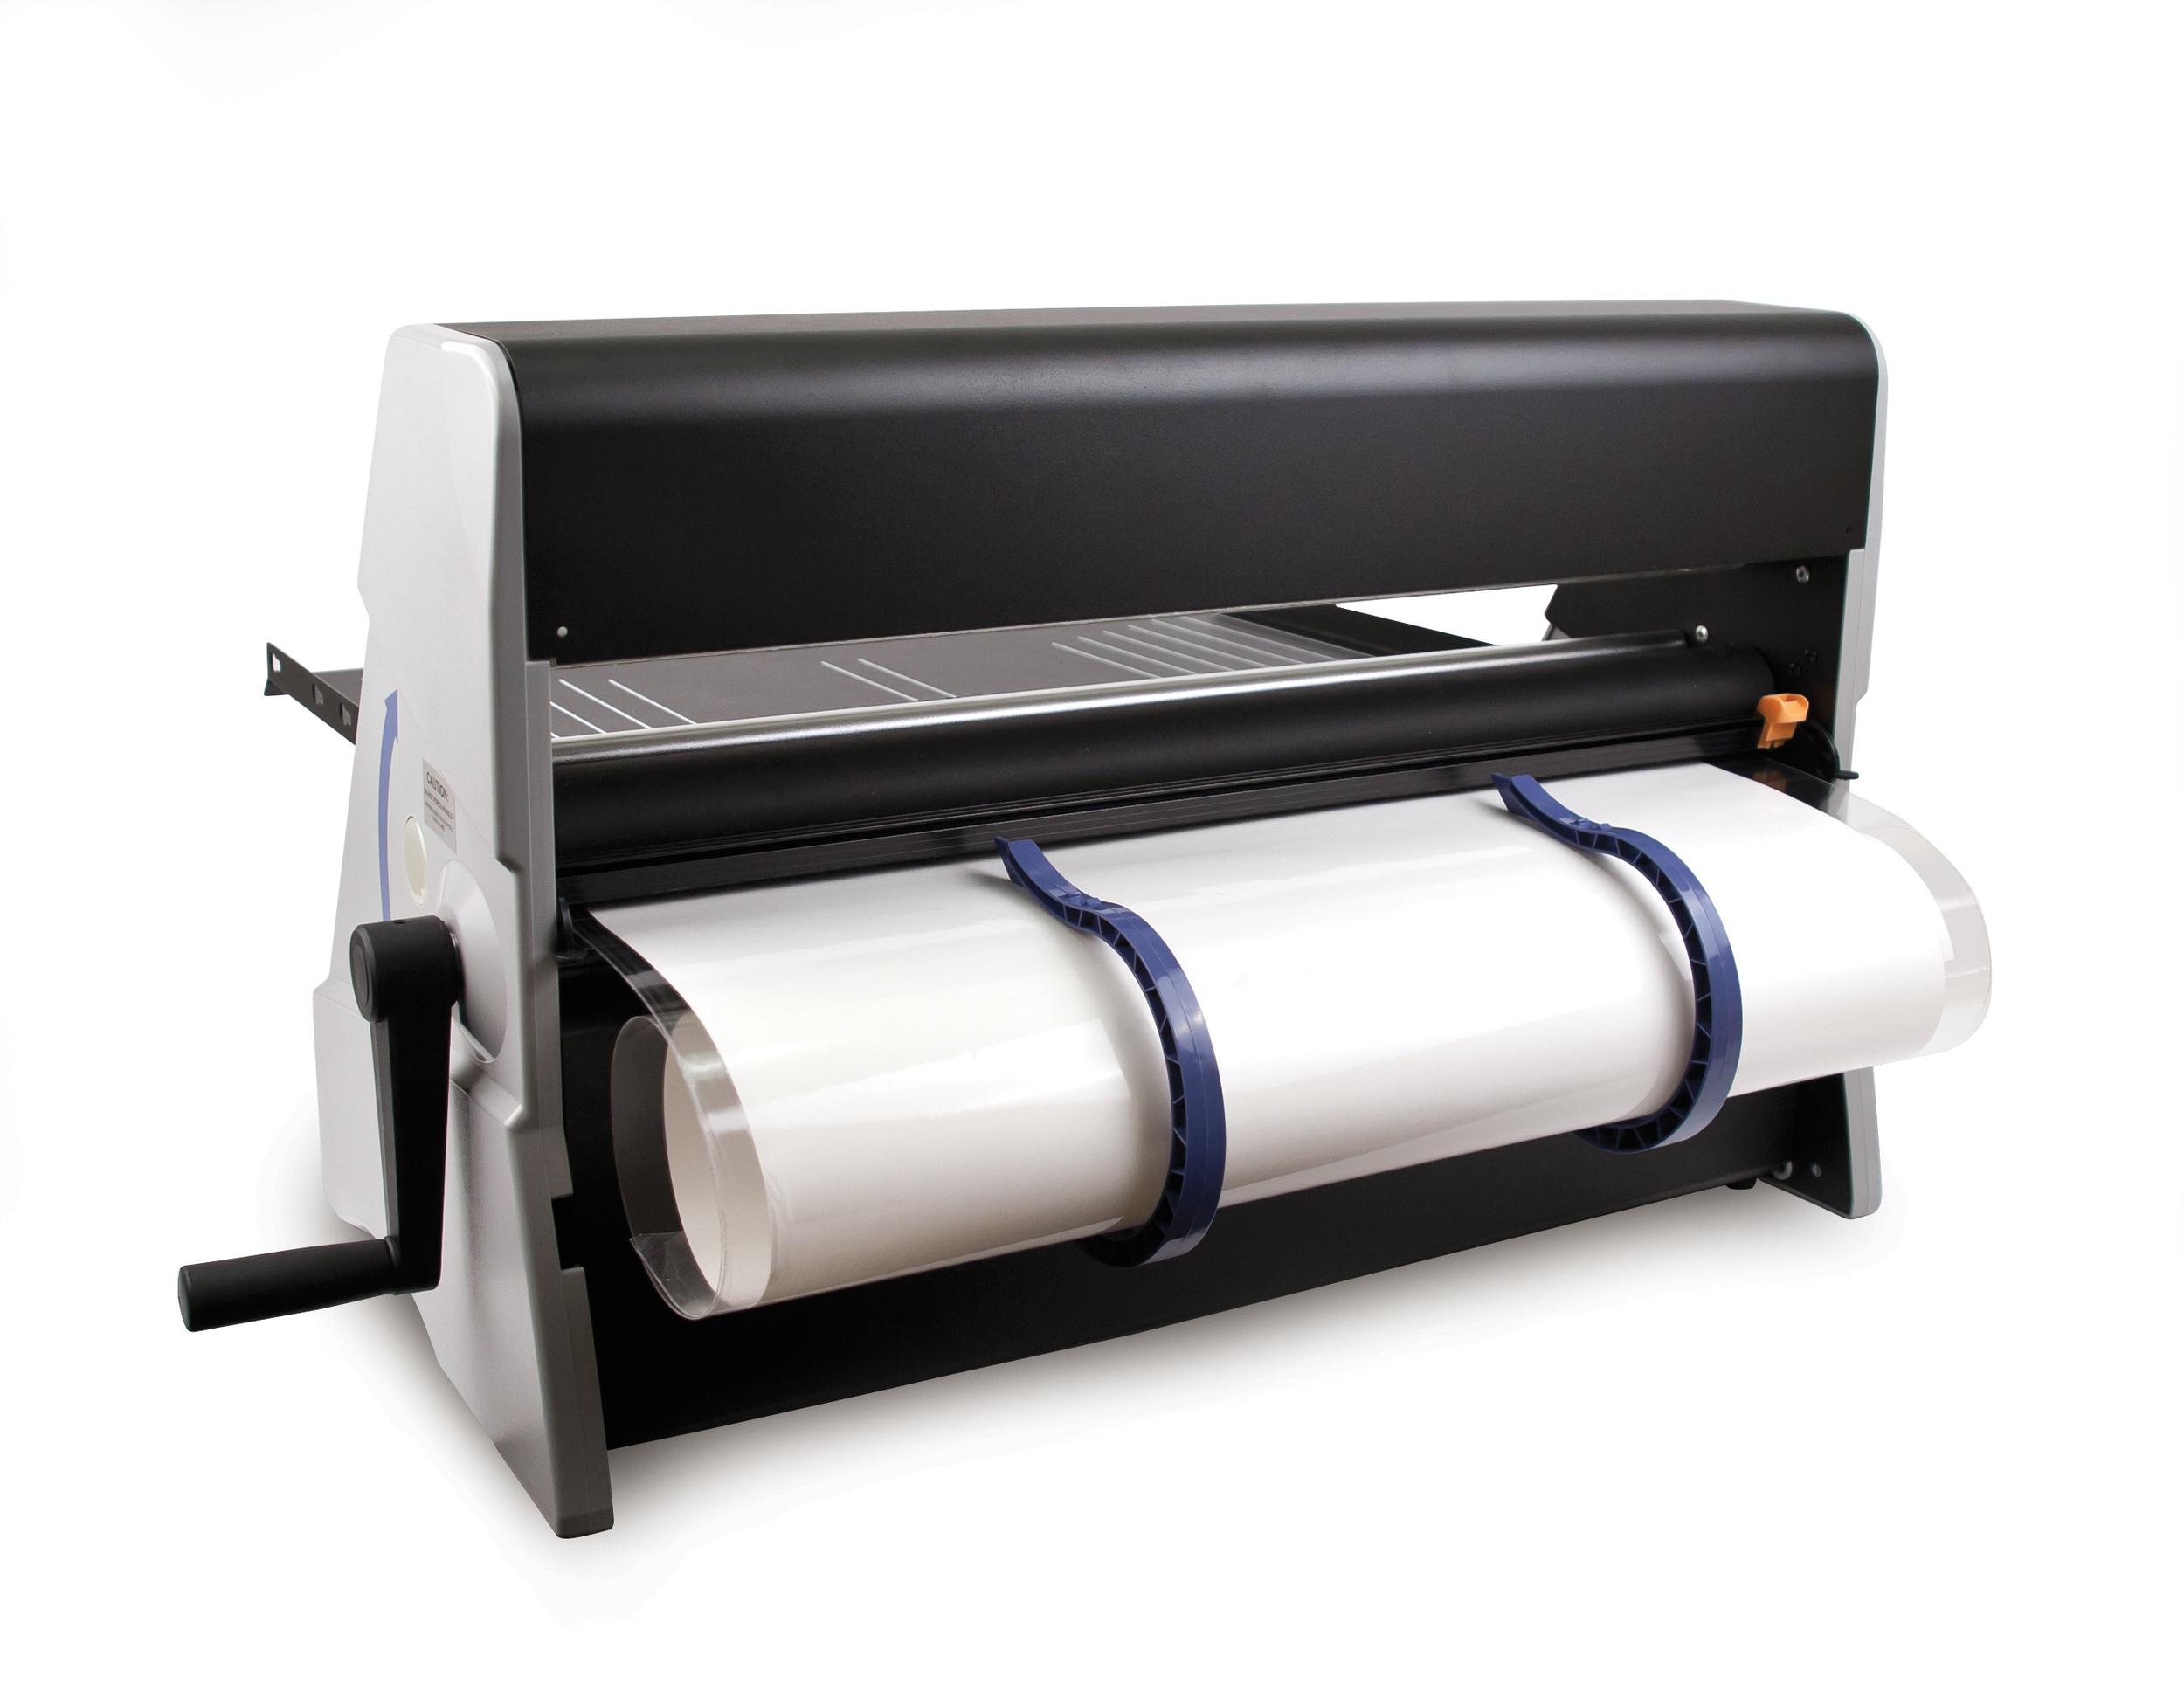 Built-in banner catcher conveniently rolls up longer items for you.